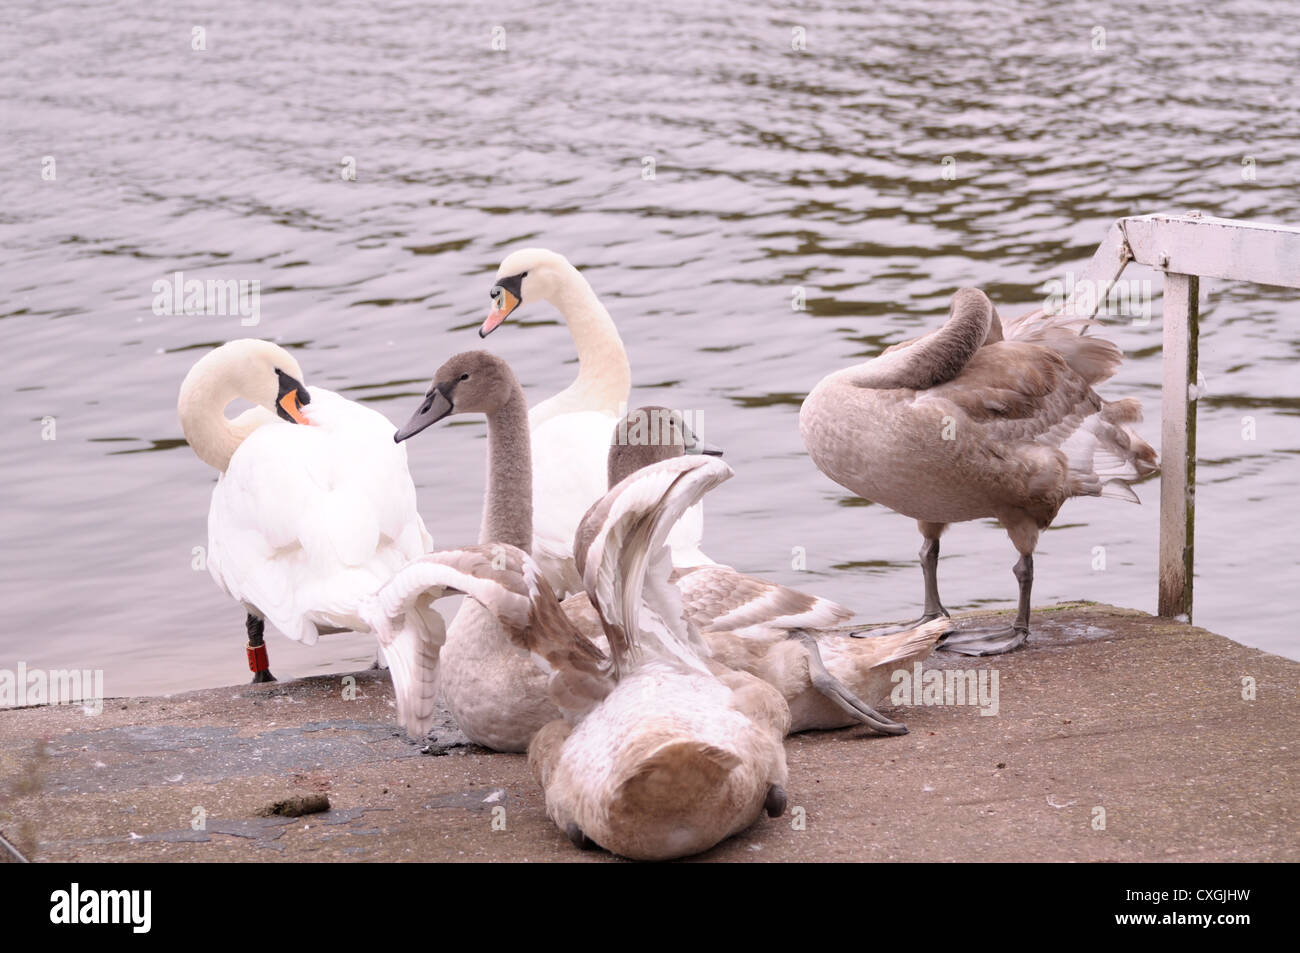 The Swans 2 - Stock Image